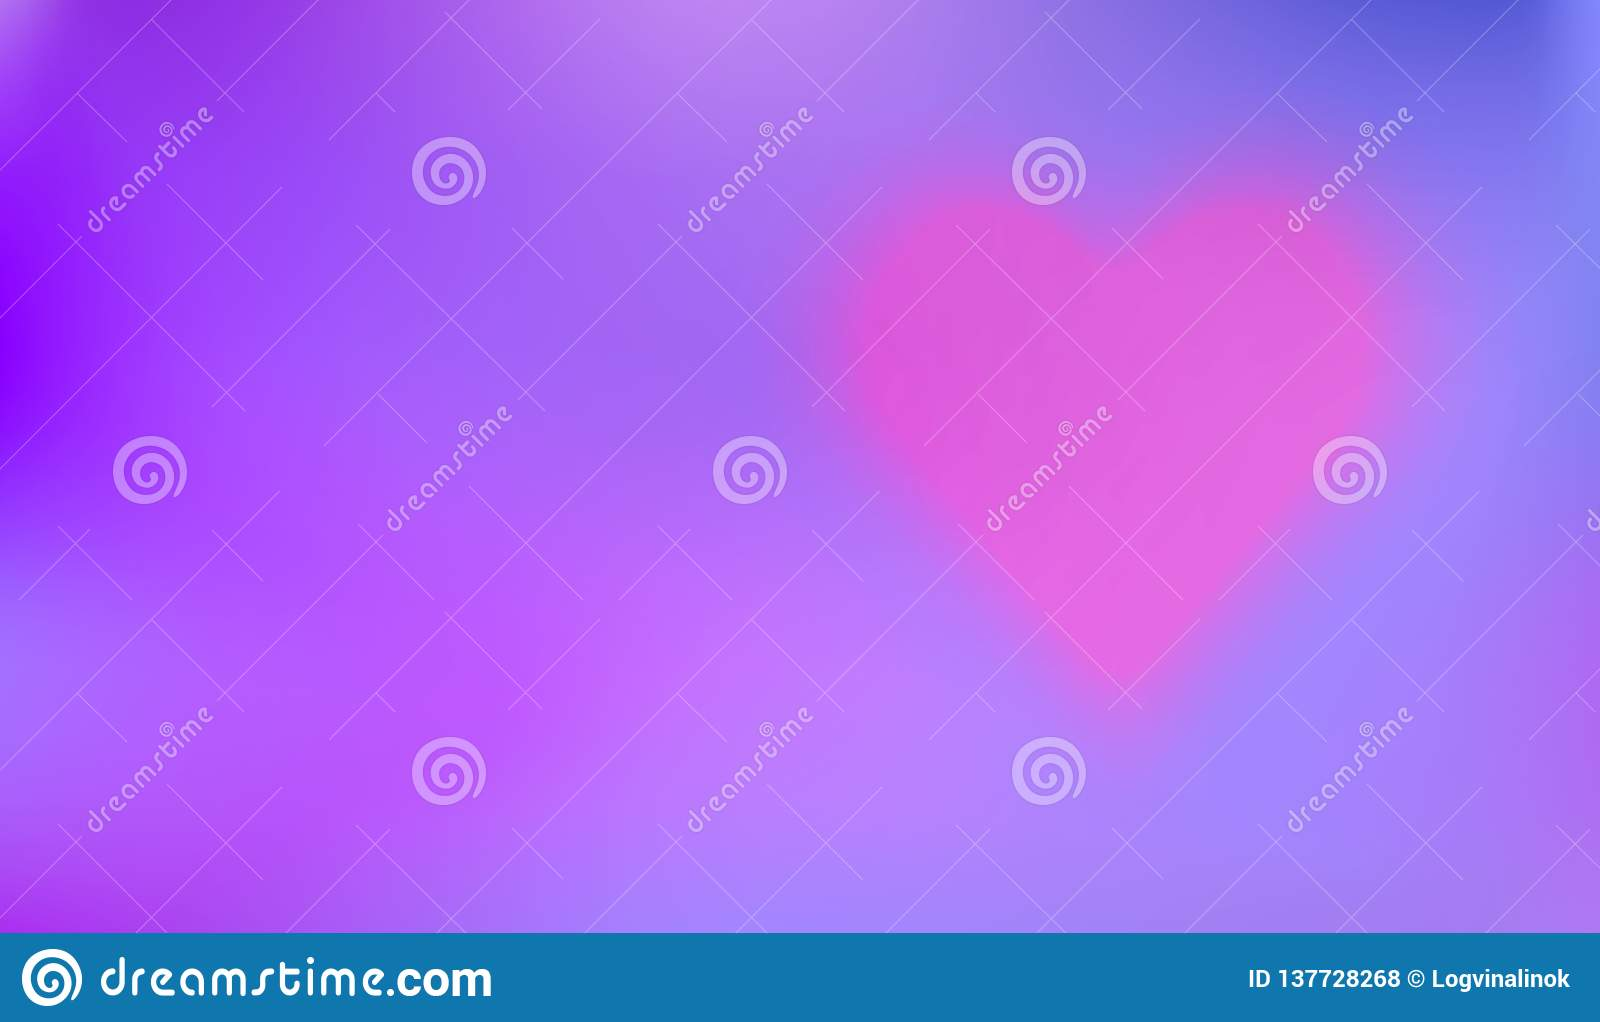 Delicate background with heart will help to create a romantic card or Valentine.